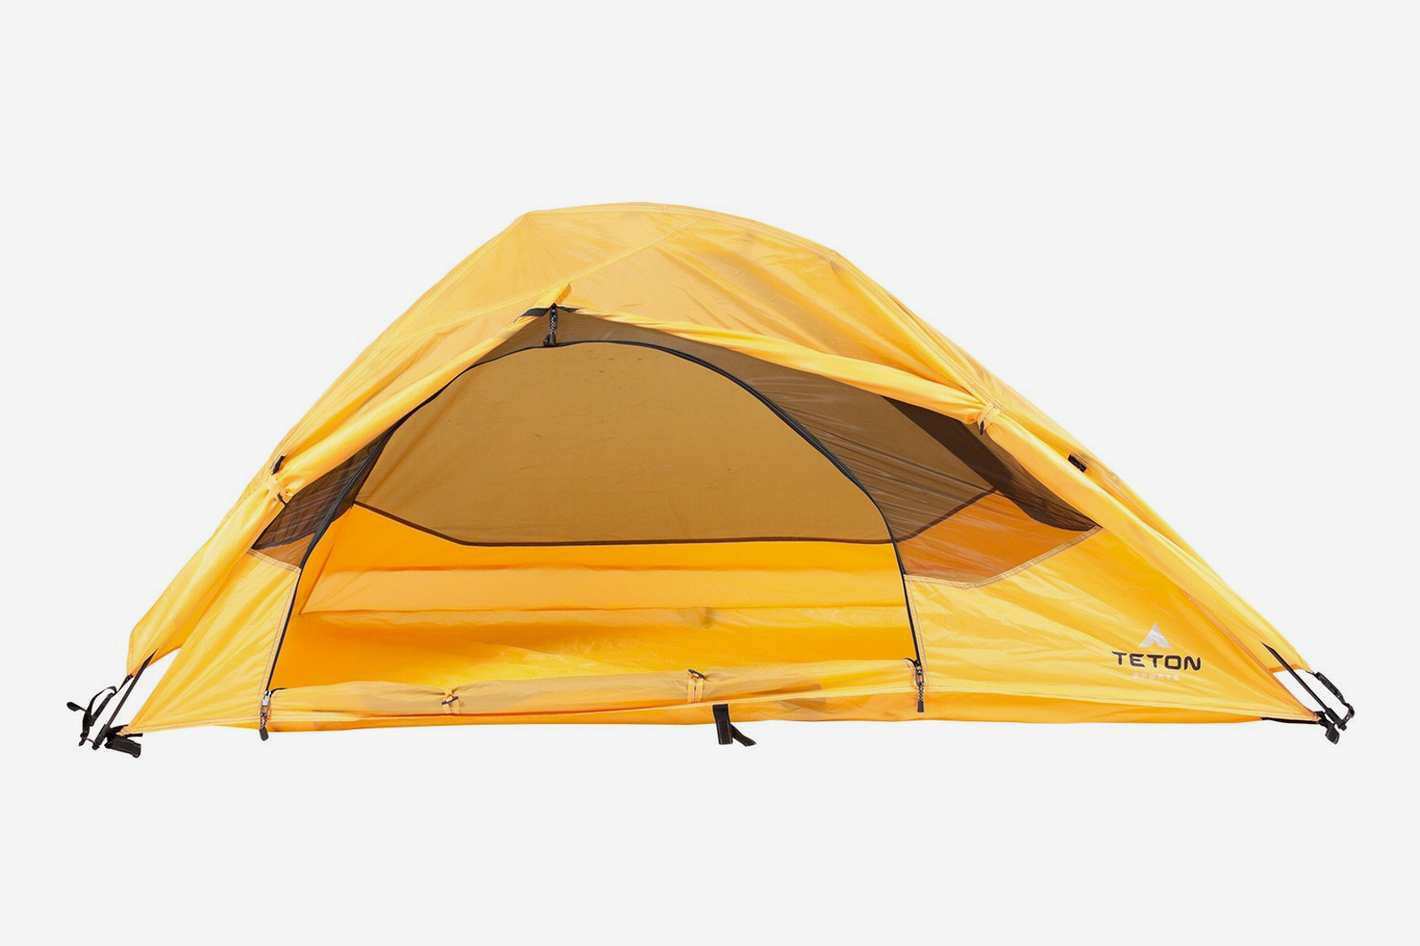 13 Best Outdoor Tents for Camping and Backpacking — 2019